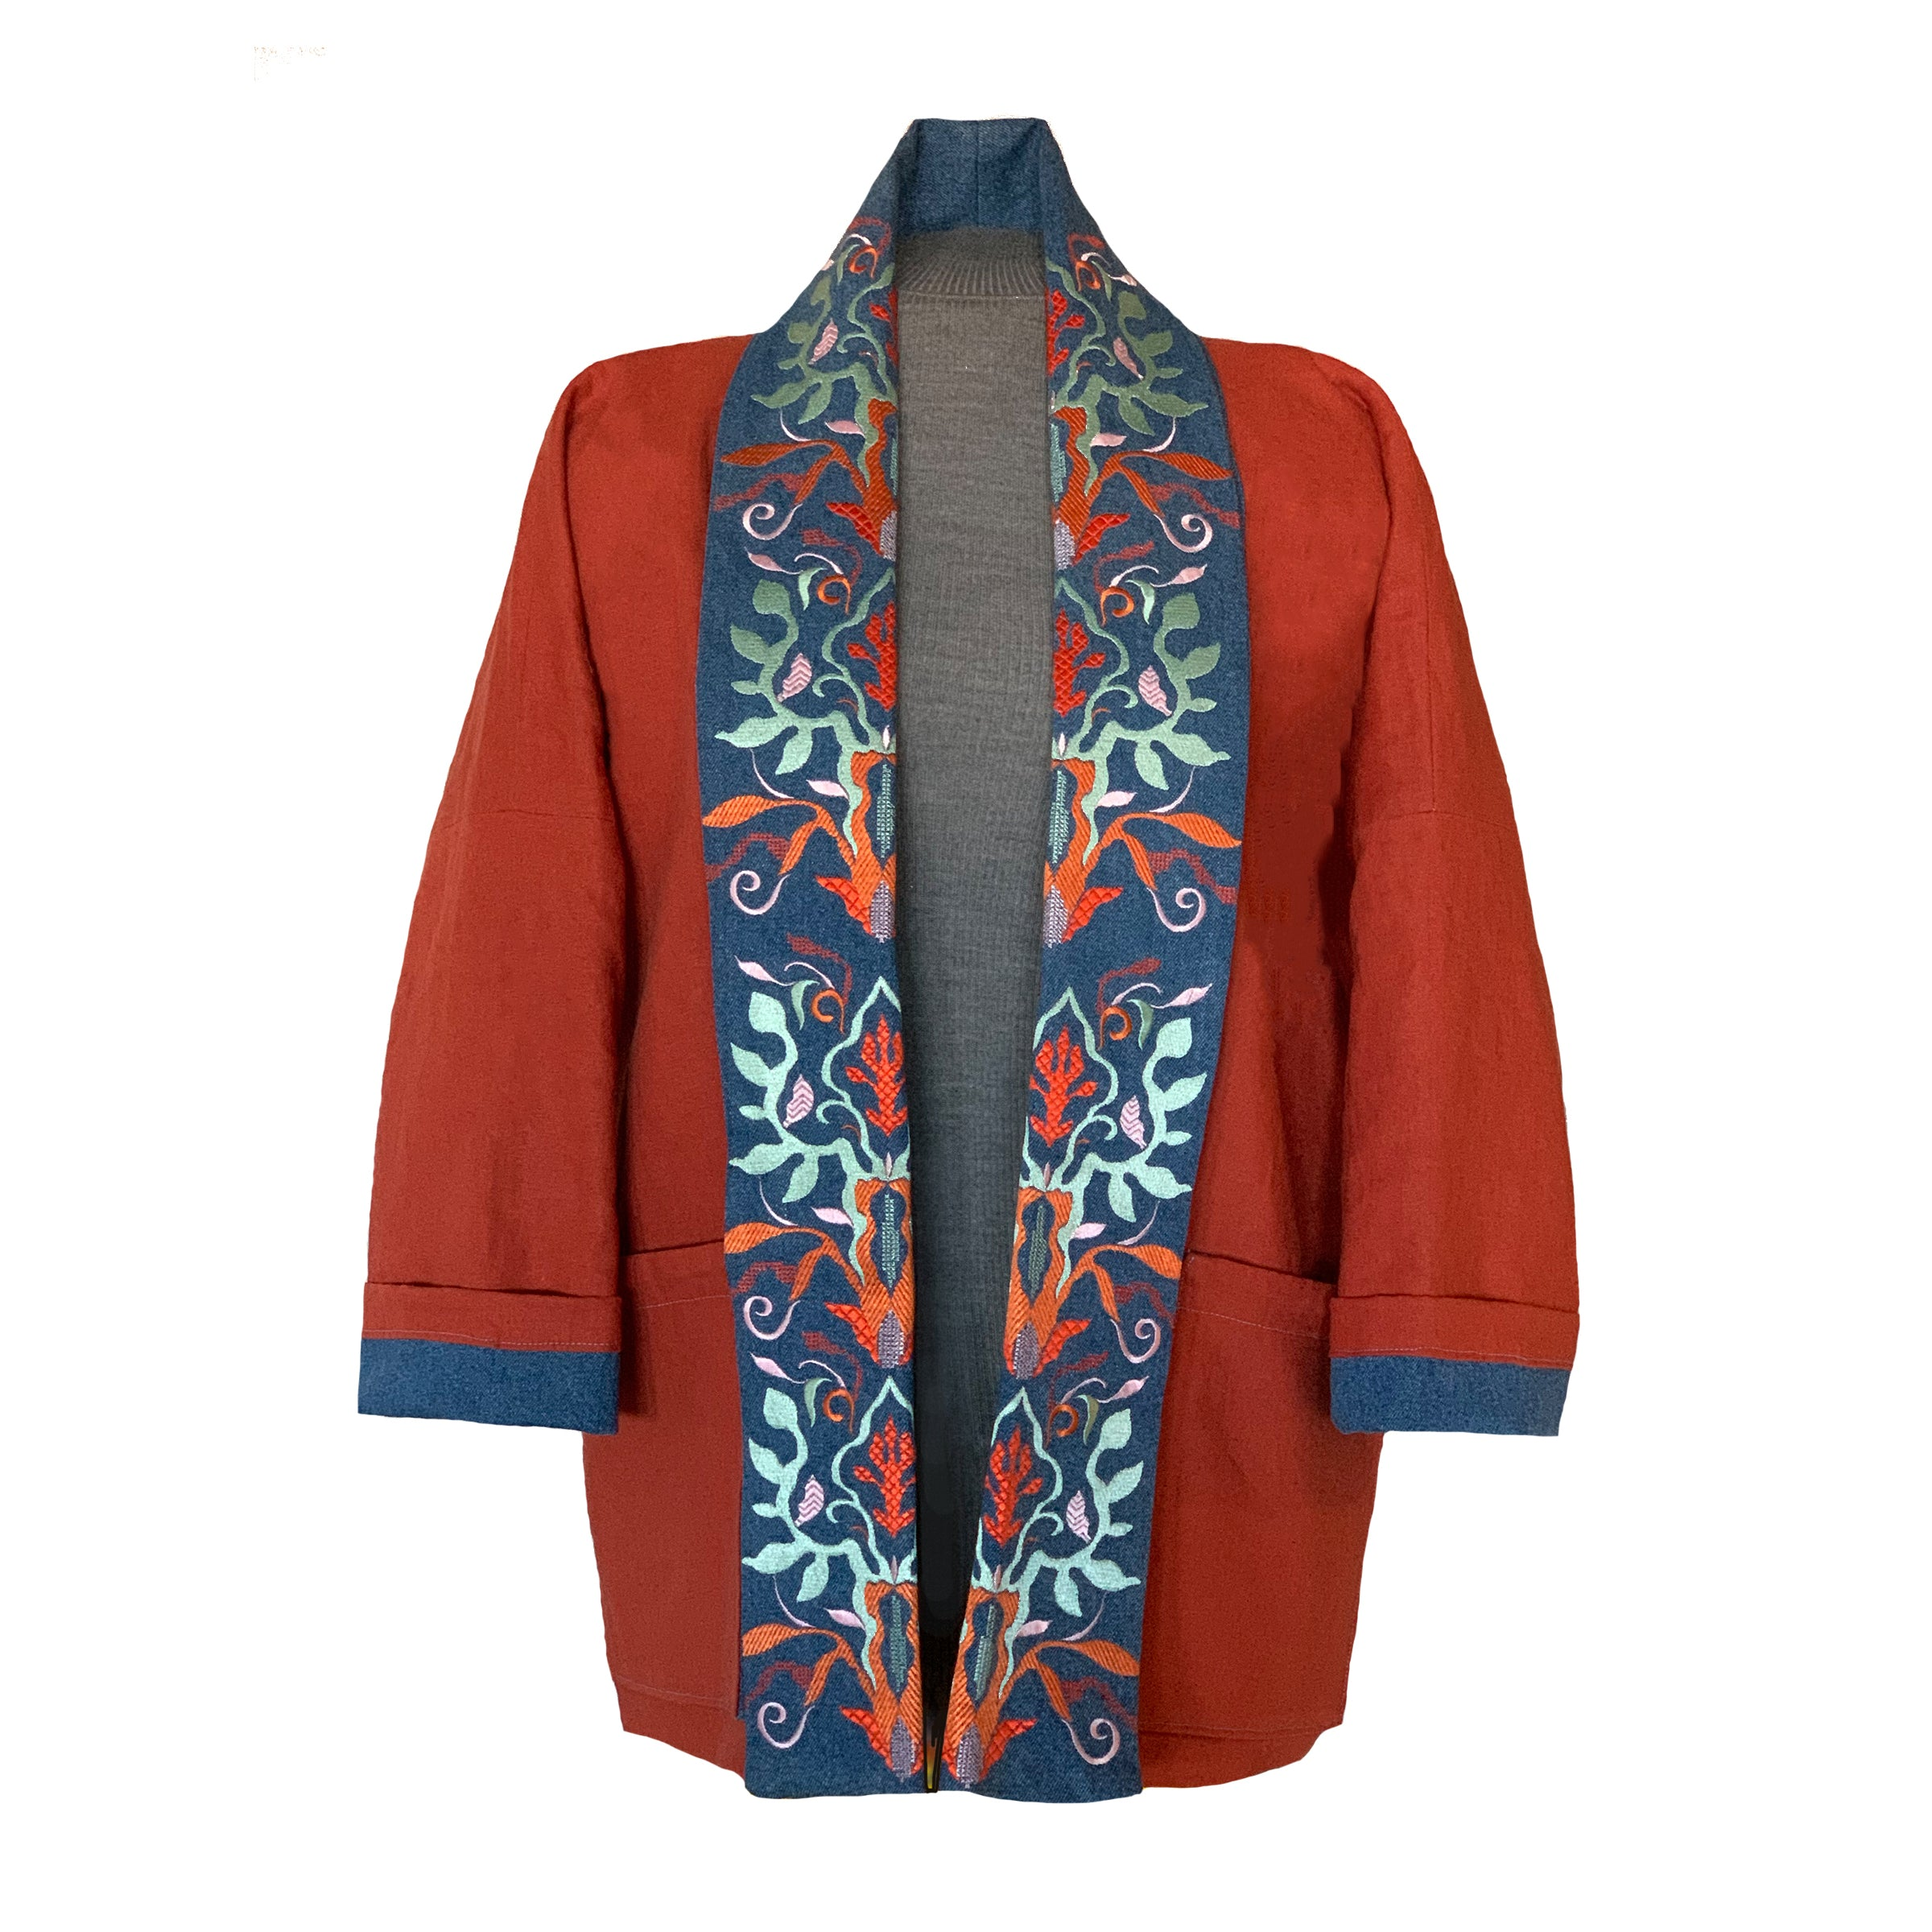 Embroidered Reversible Jacket